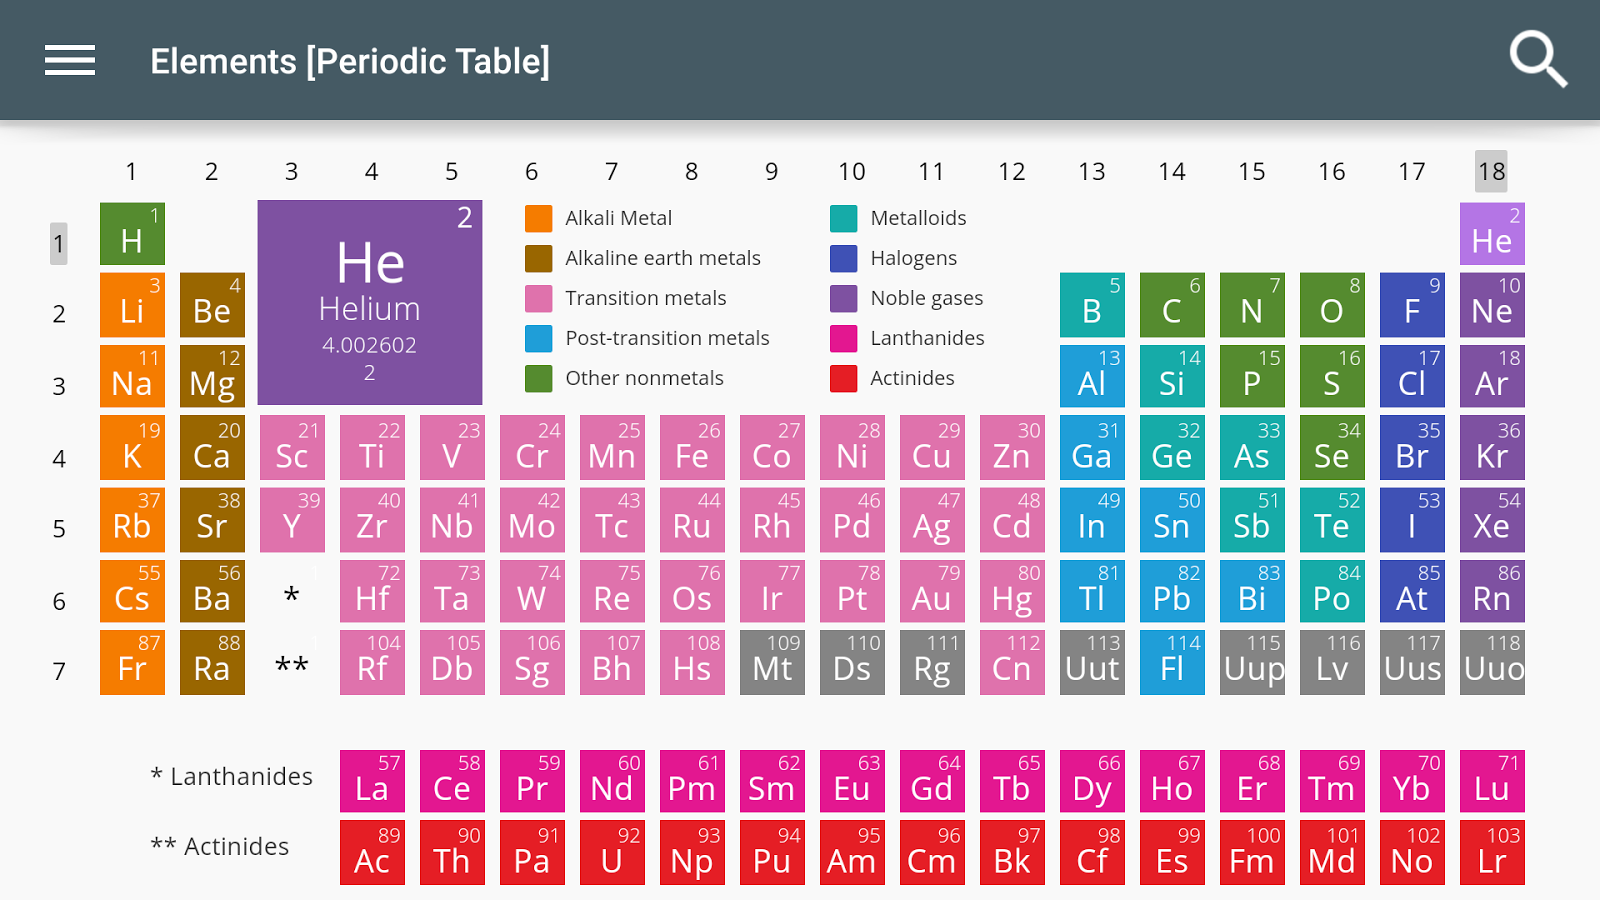 Elements periodic table 10 apk download android education apps elements periodic table 10 screenshot 2 urtaz Gallery